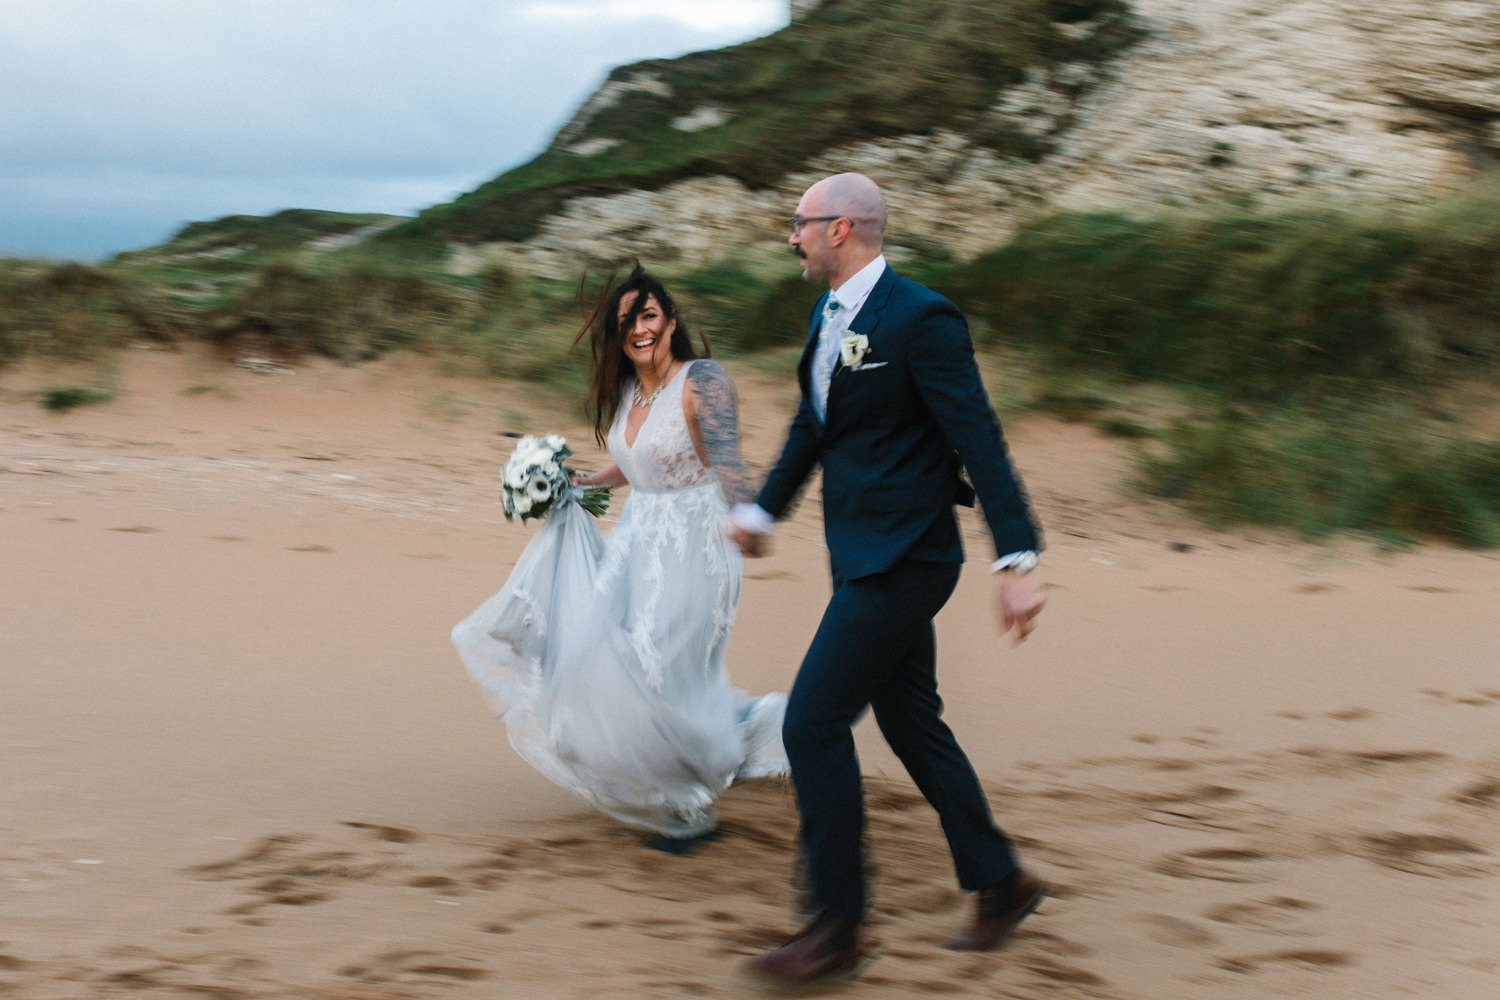 north-coast-elopement-CS-4 North Coast of Ireland Elopement // Colin and Sarah